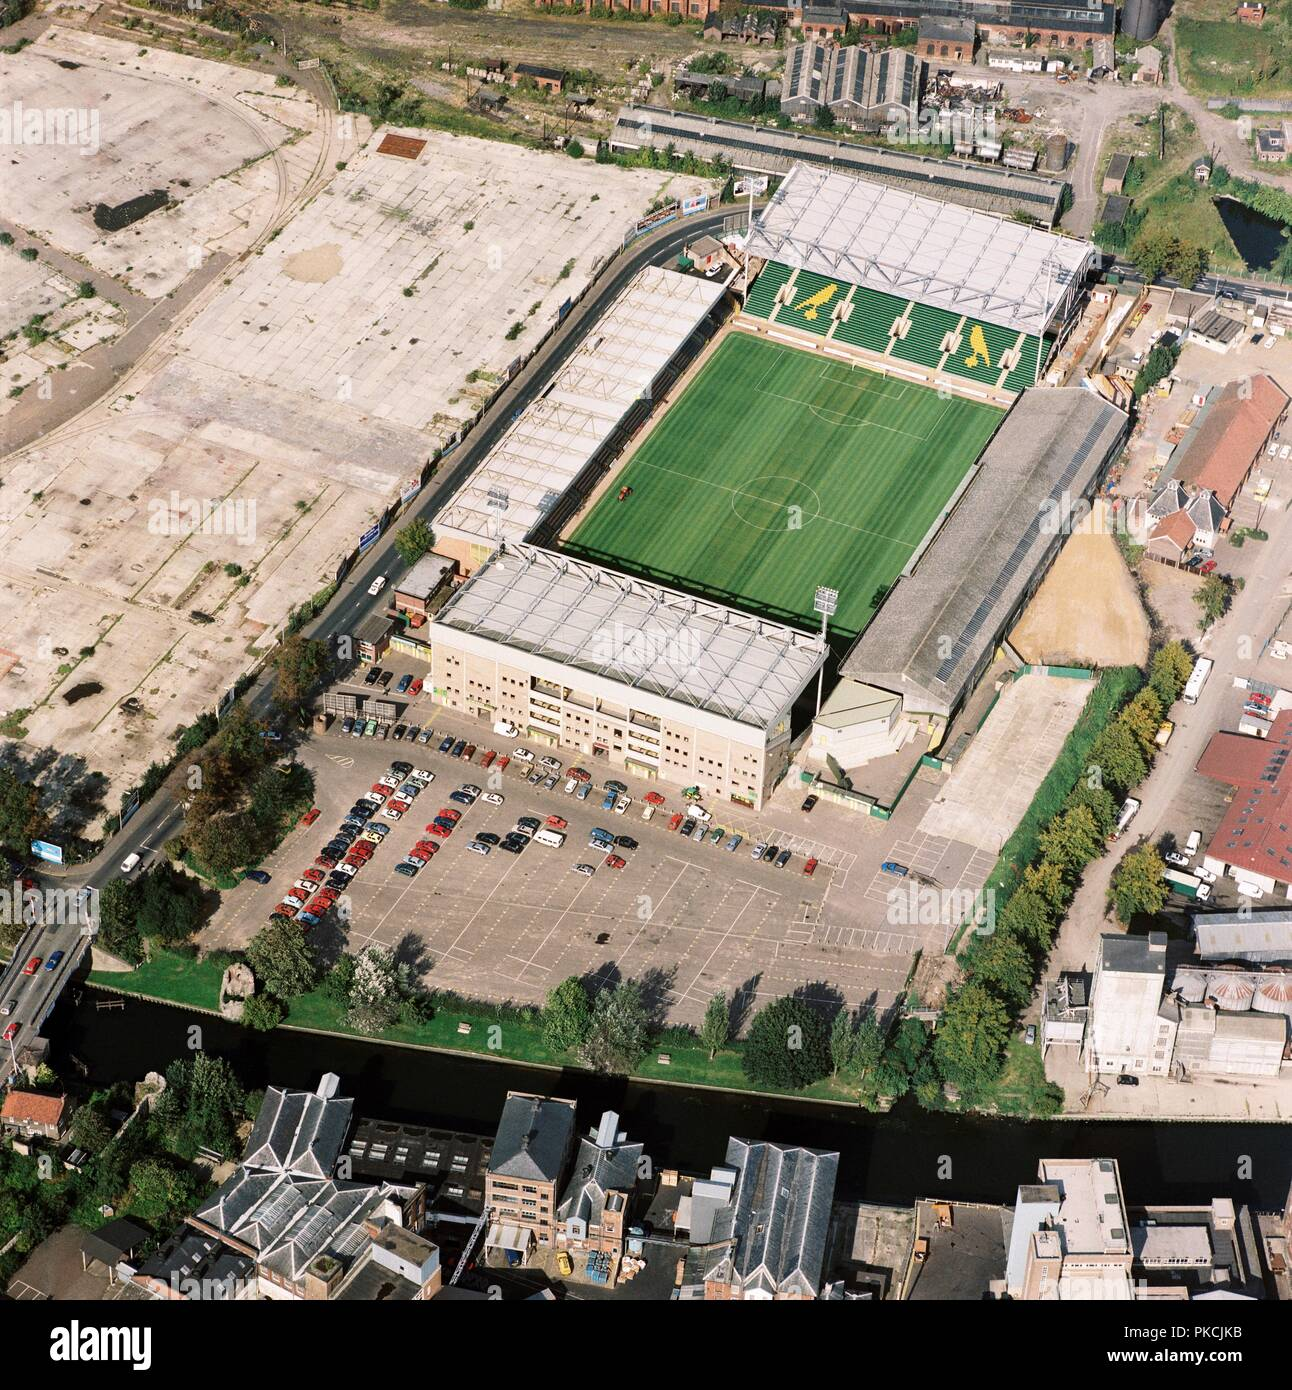 Carrow Road, Norwich, Norfolk, 1992. Aerial view of the home of Norwich City Football Club. Founder members of the Premier League (1992-1993), the Canaries were pushing for the title in its first season, eventually finishing in third place. - Stock Image